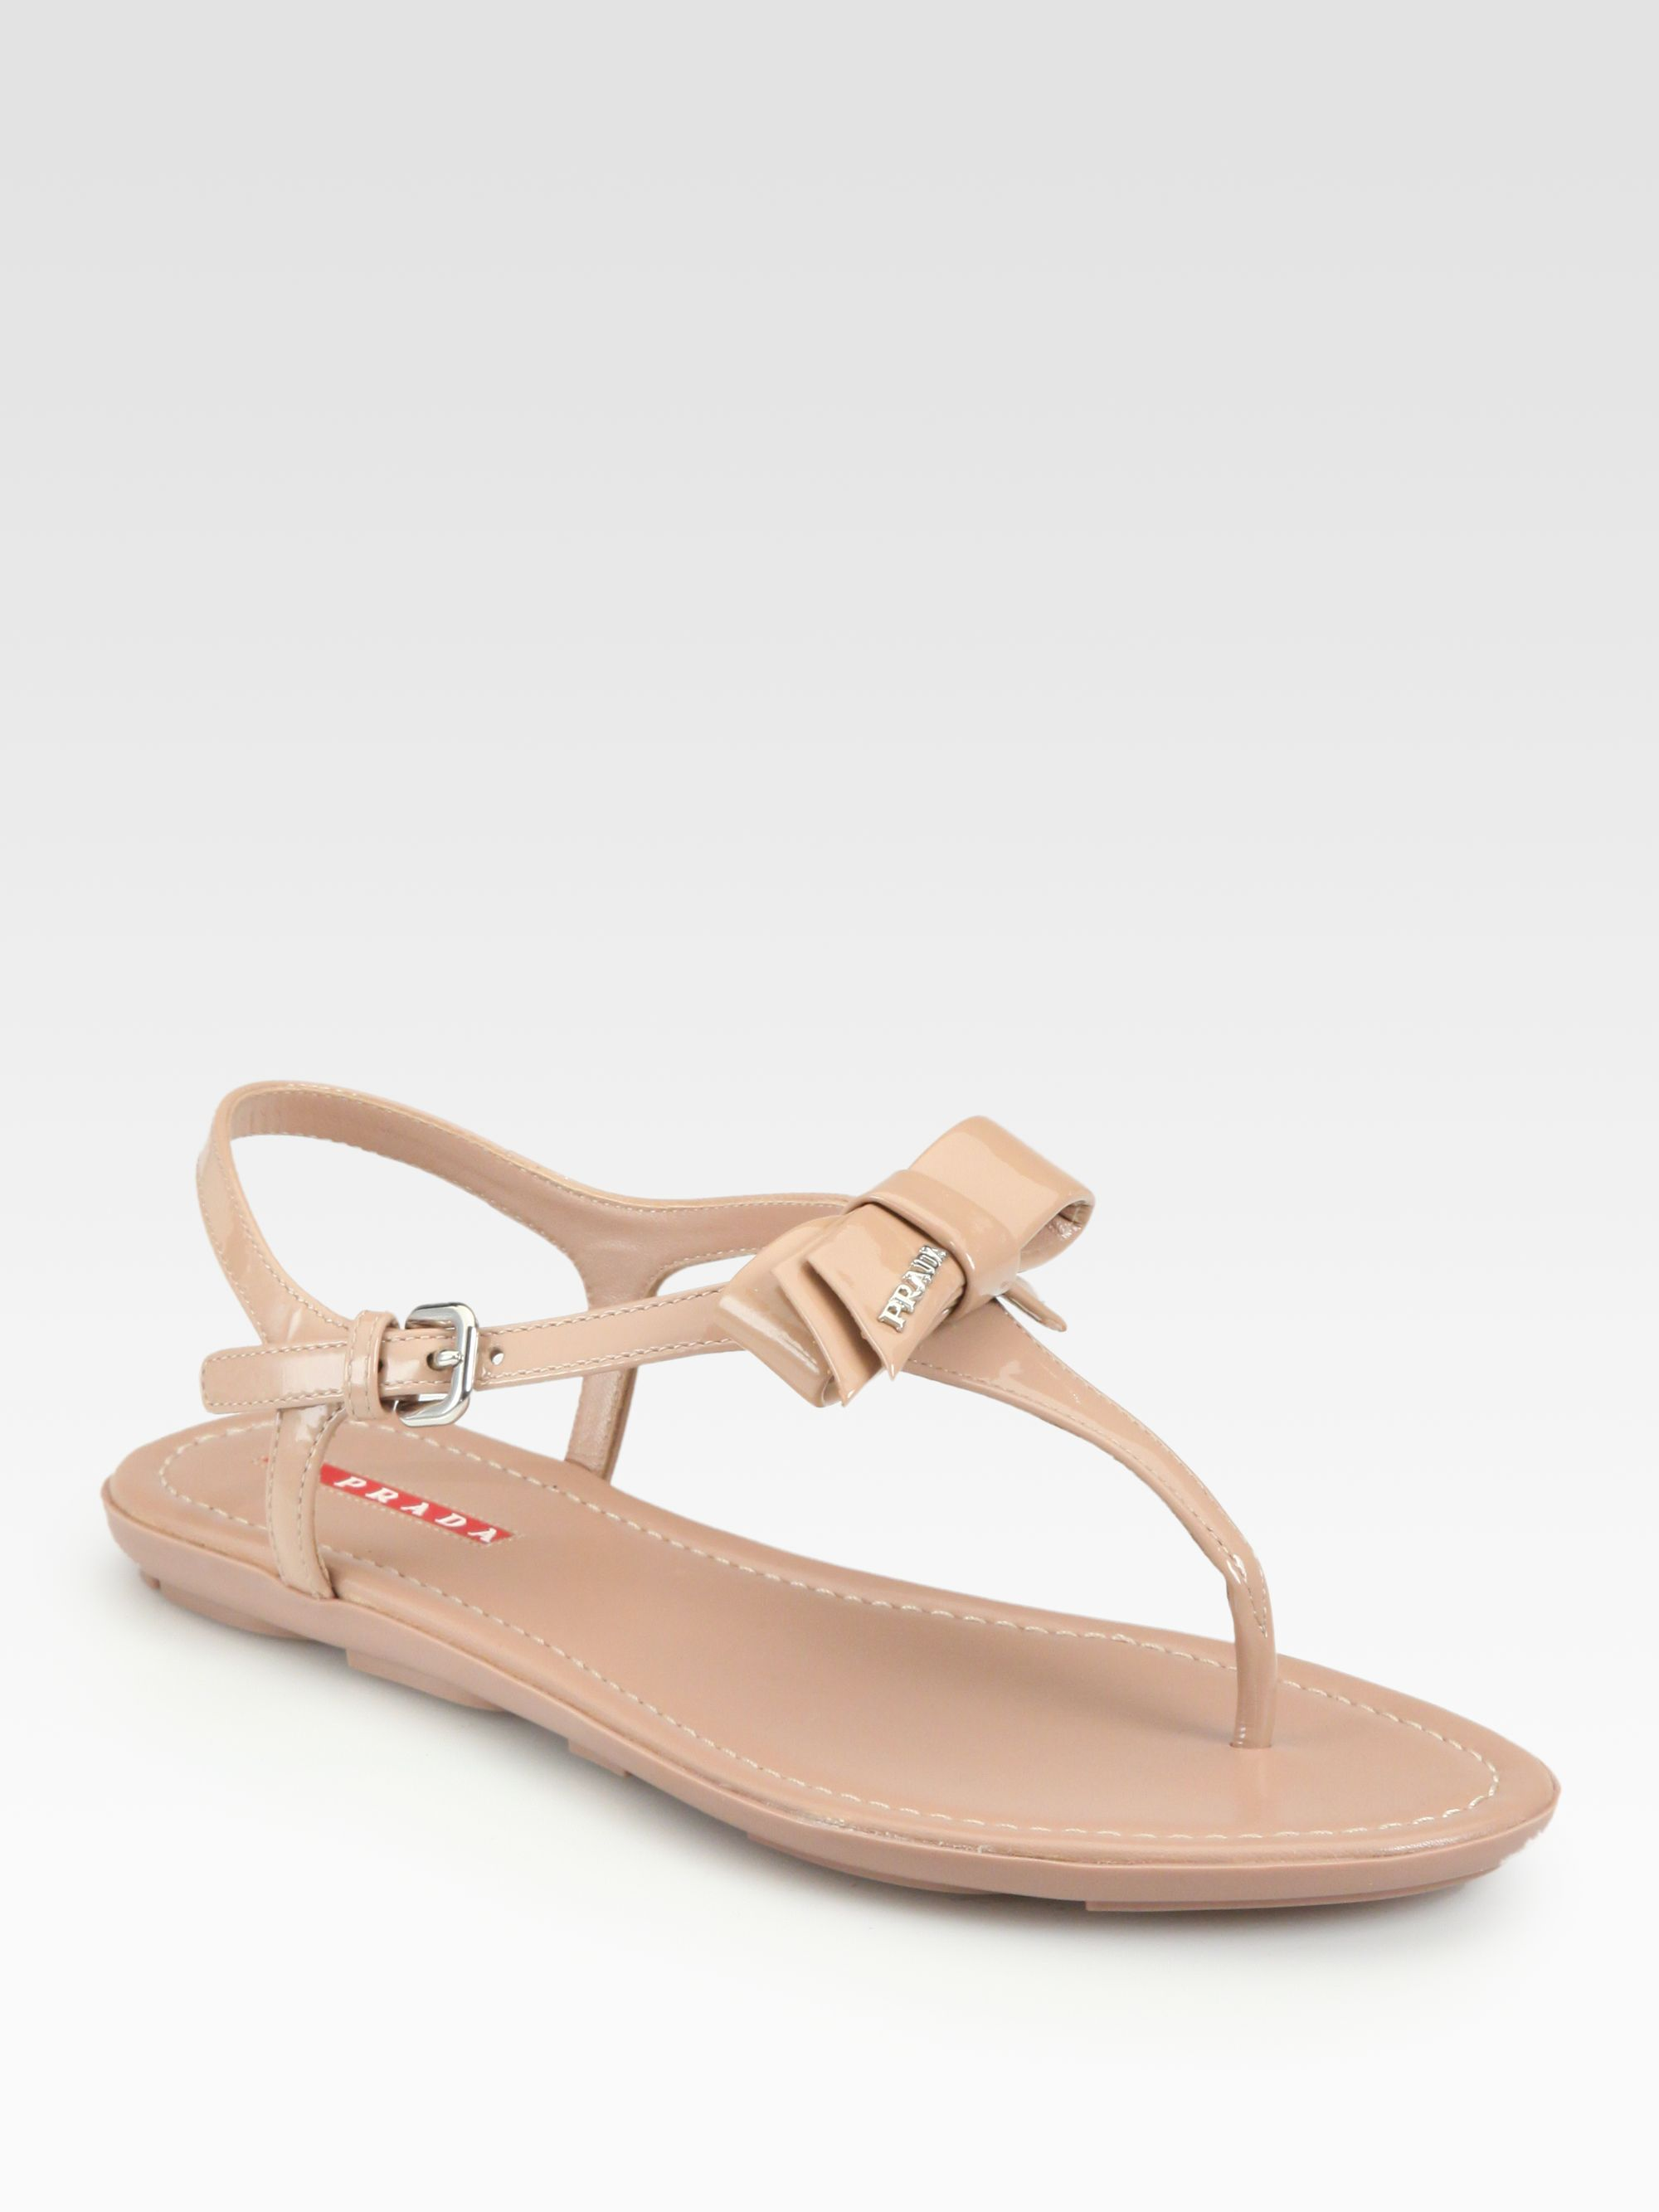 7091efdd783ff9 Lyst - Prada Patent Leather Bow Thong Sandals in Natural